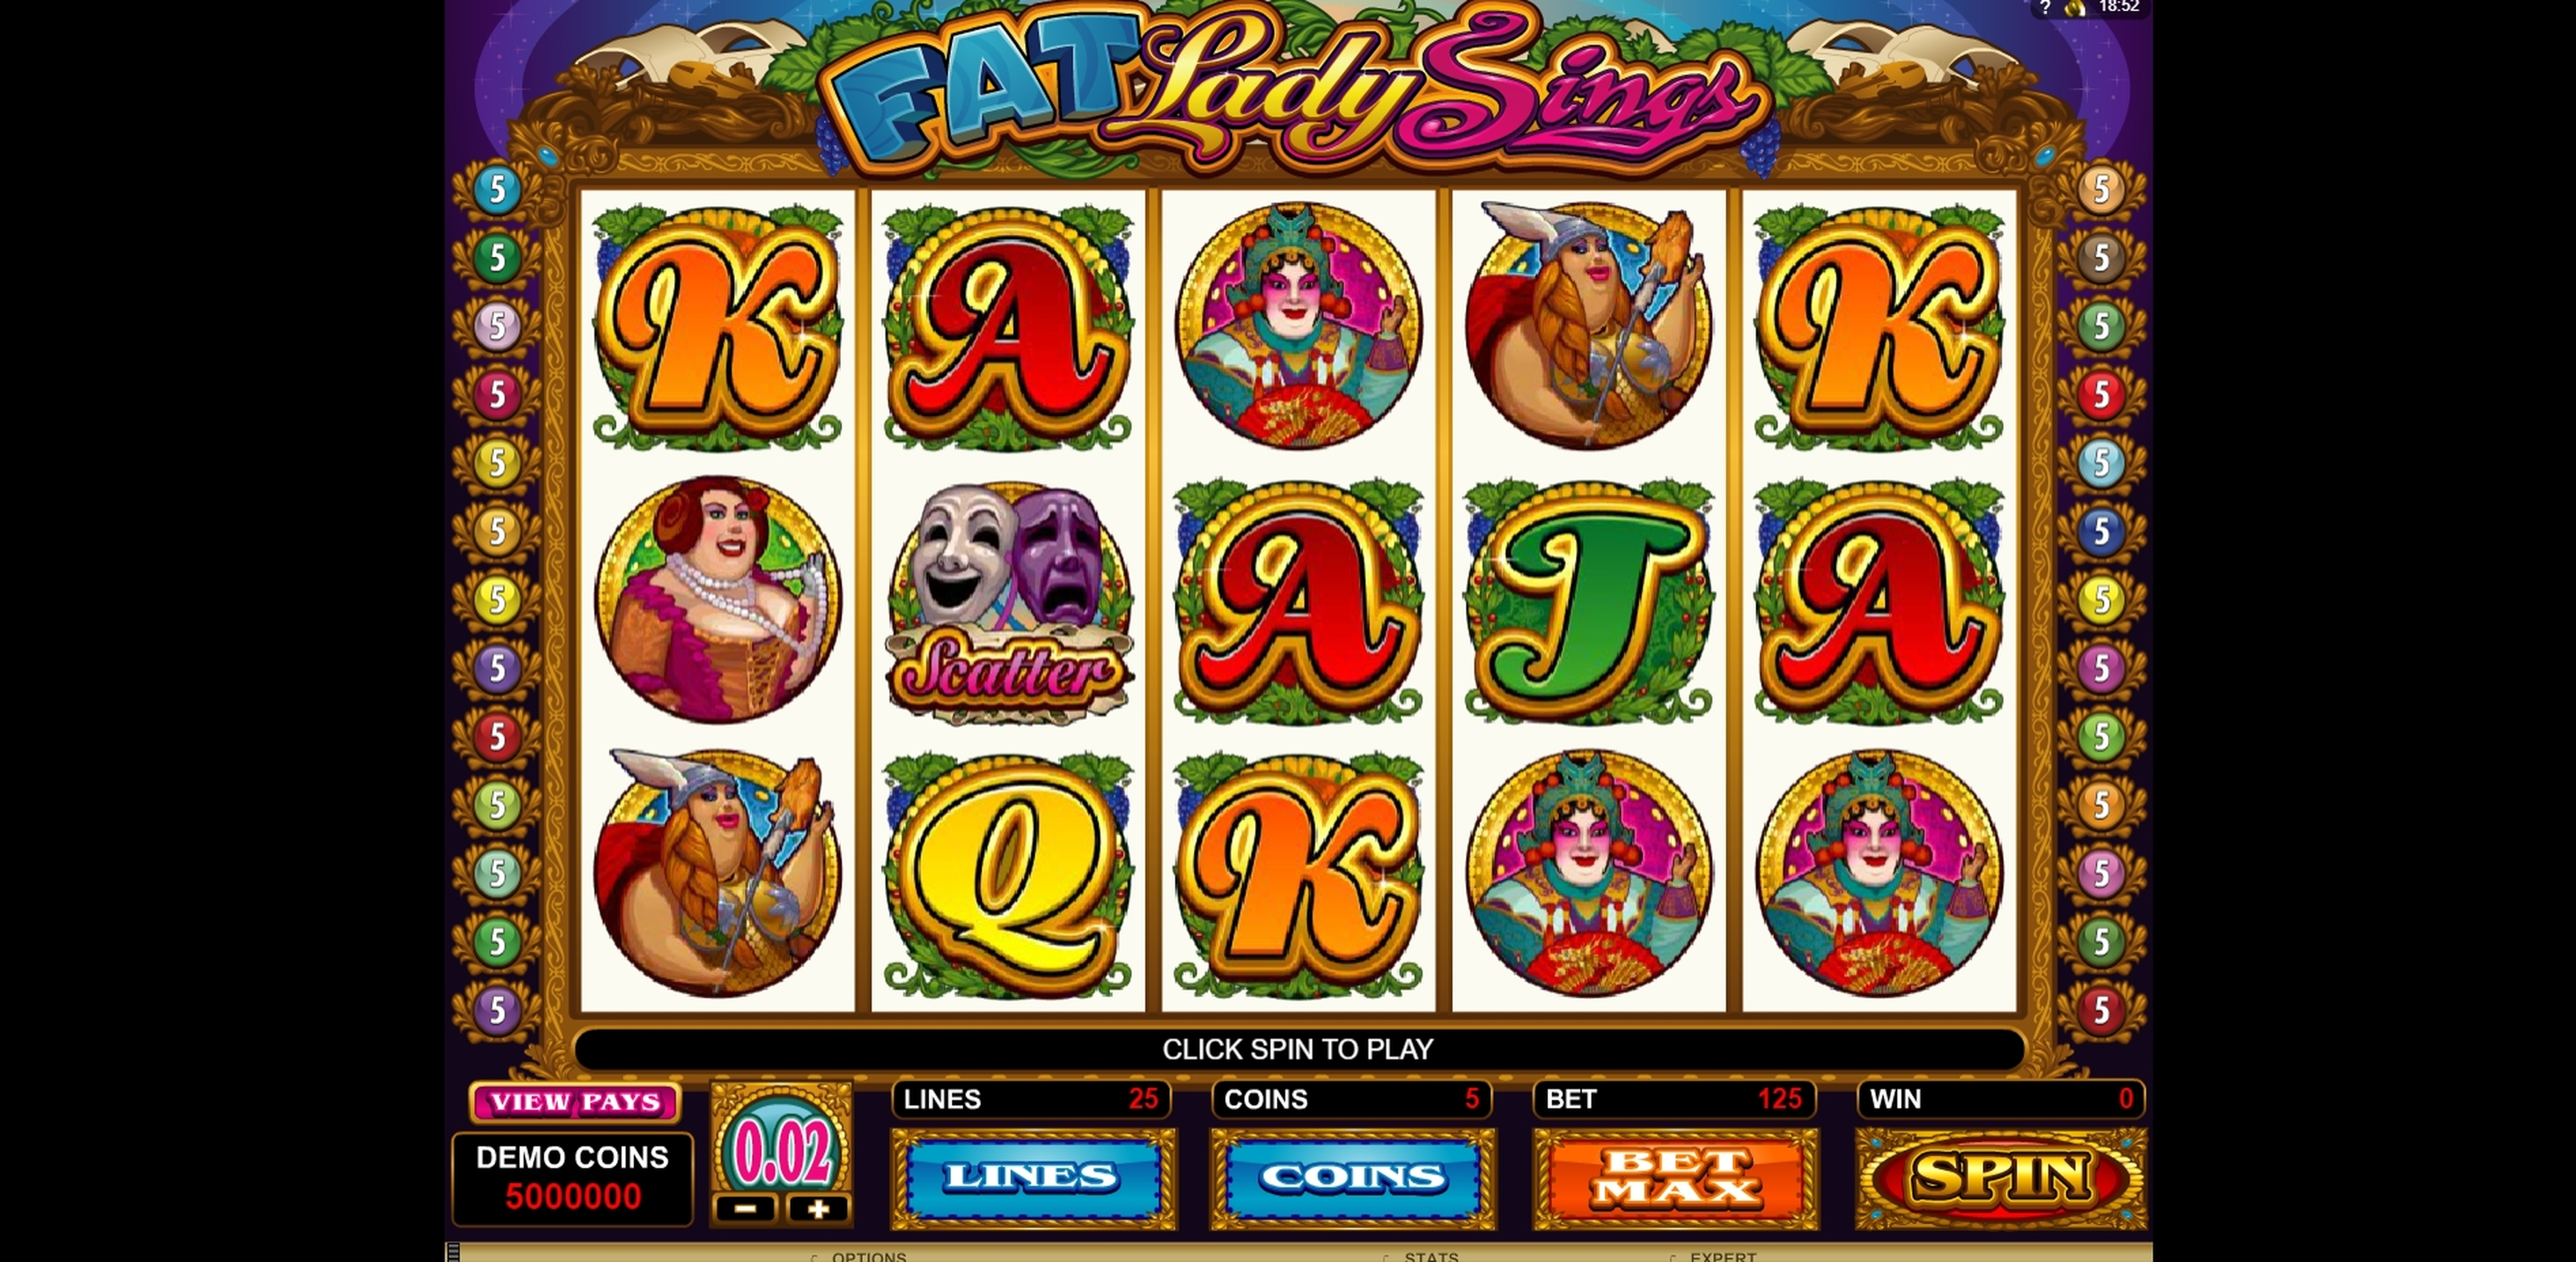 Reels in Fat Lady Sings Slot Game by Microgaming